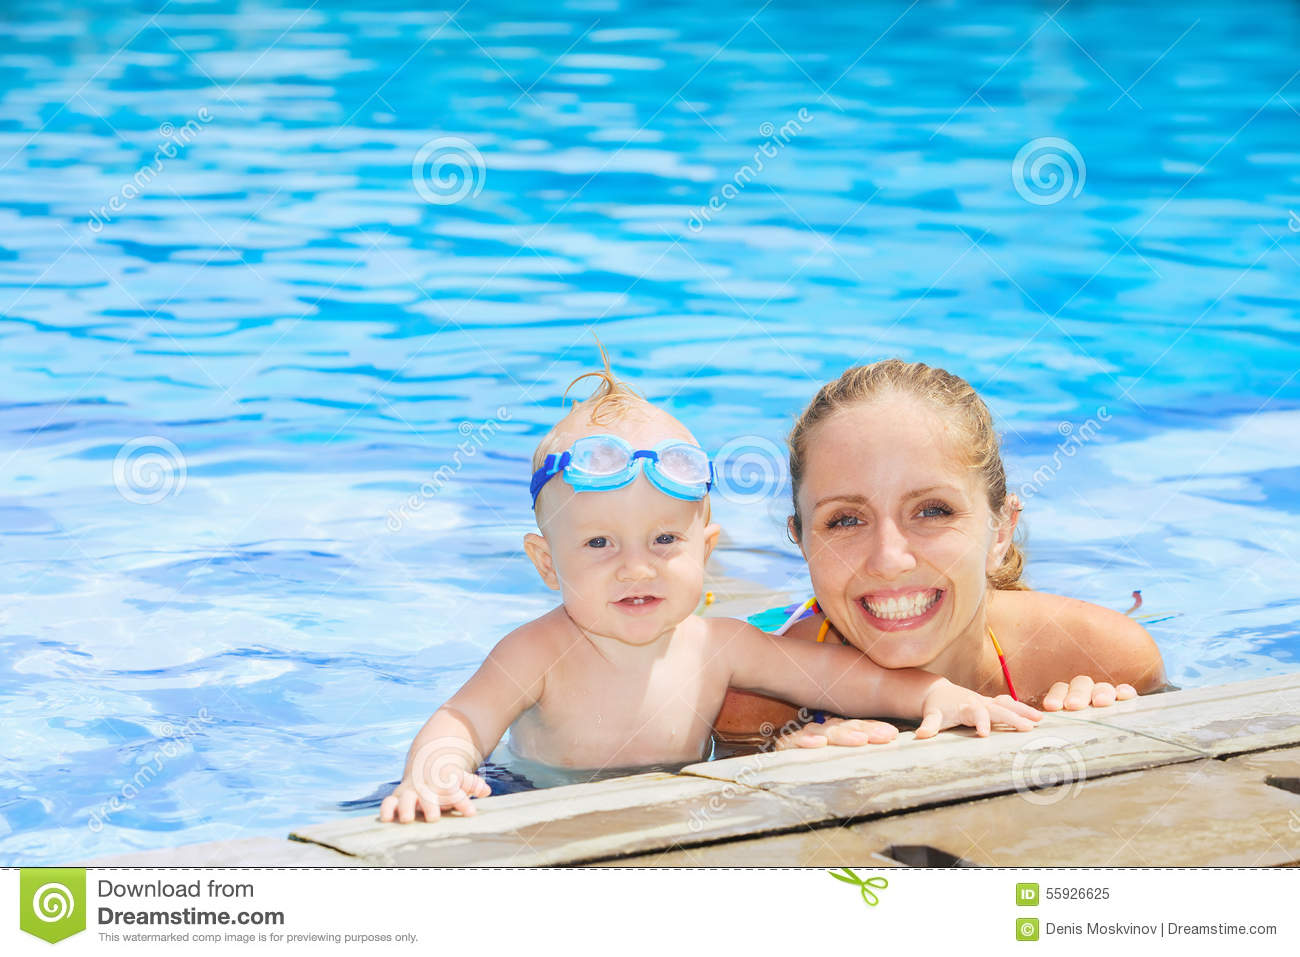 Funny portrait of baby boy swimming with mother in pool